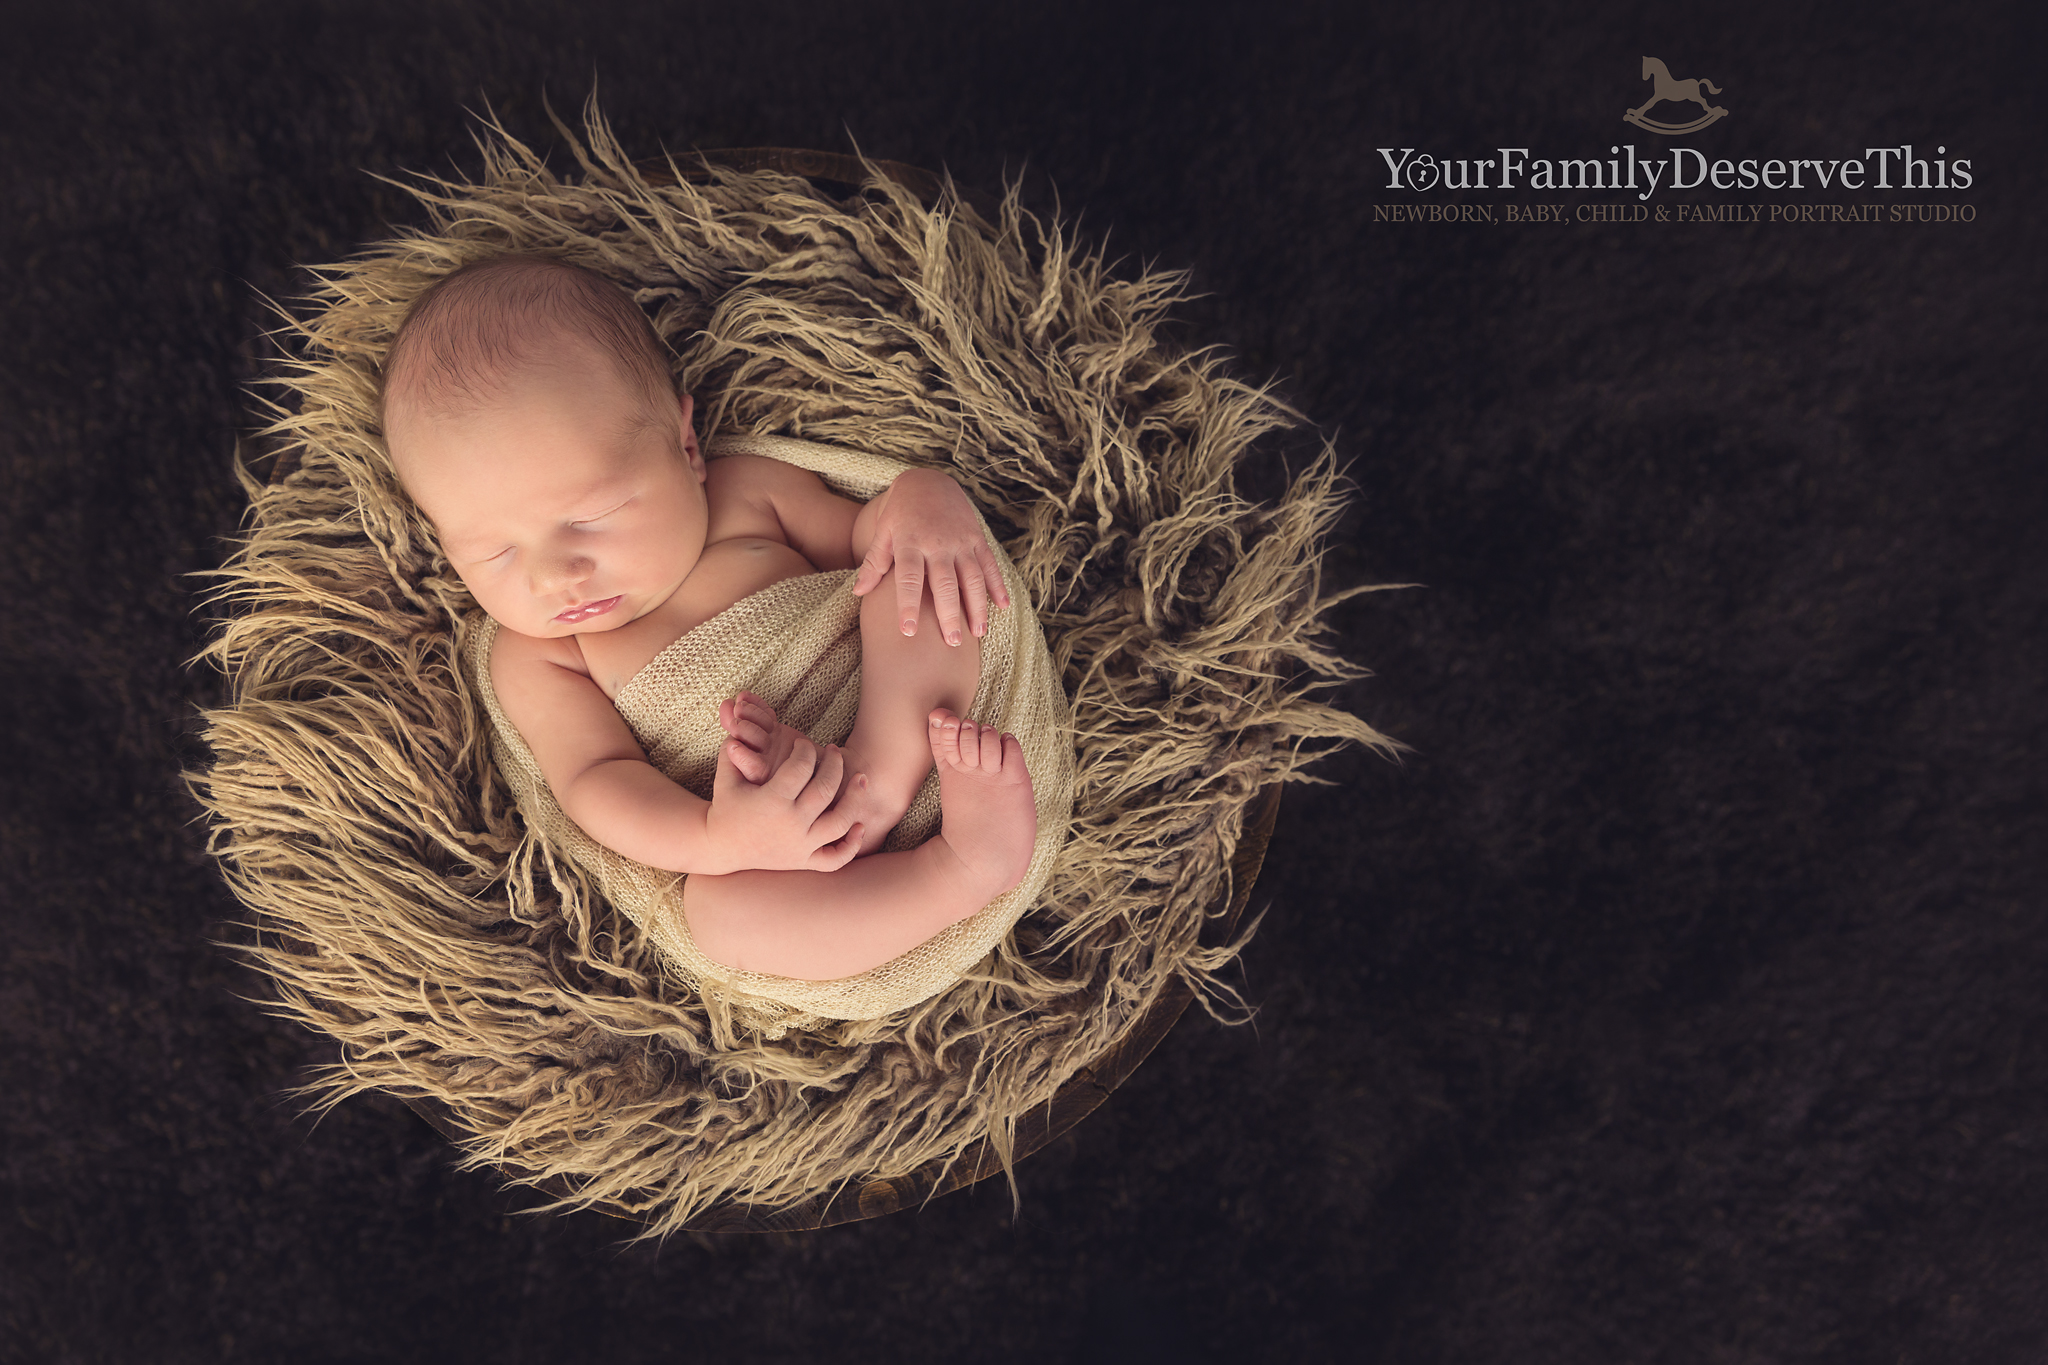 We have props galore in our  Newborn Studio . Natural fabrics, Baskets and Crates, and our wonderful Newborn Nests for singles and twins. We have gorgeous soft rugs and stuffers and beautiful hats, bonnets, headbands, wraps and lots more... How do you dream of your newborn being photographed?  Call Michelle for a consultation today.  01189 811867 www.yourfamilydeservethis.com